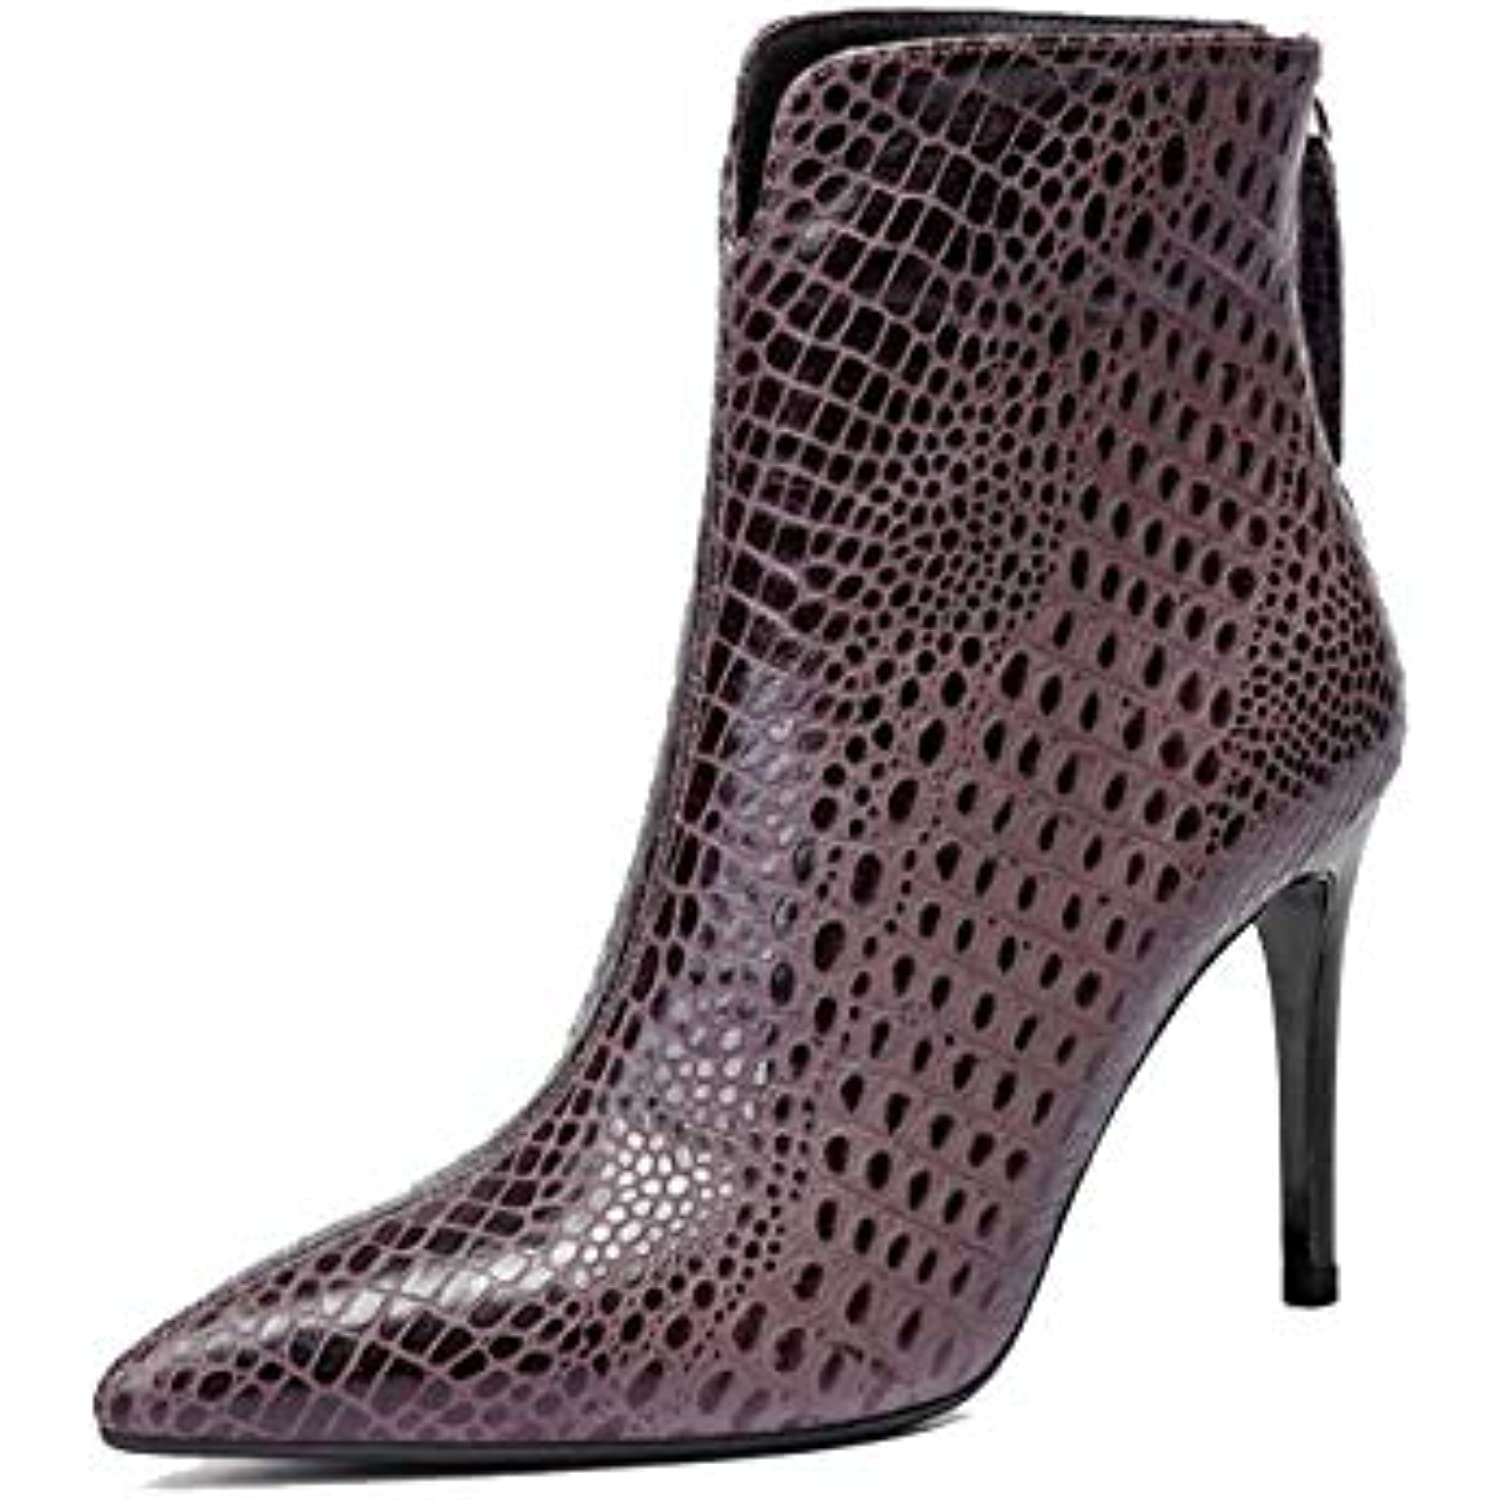 5be9045348a54 ZPEDY Chaussures pour Femmes, Bottines, Bottines, Femmes, Talons Hauts,  Sexy,